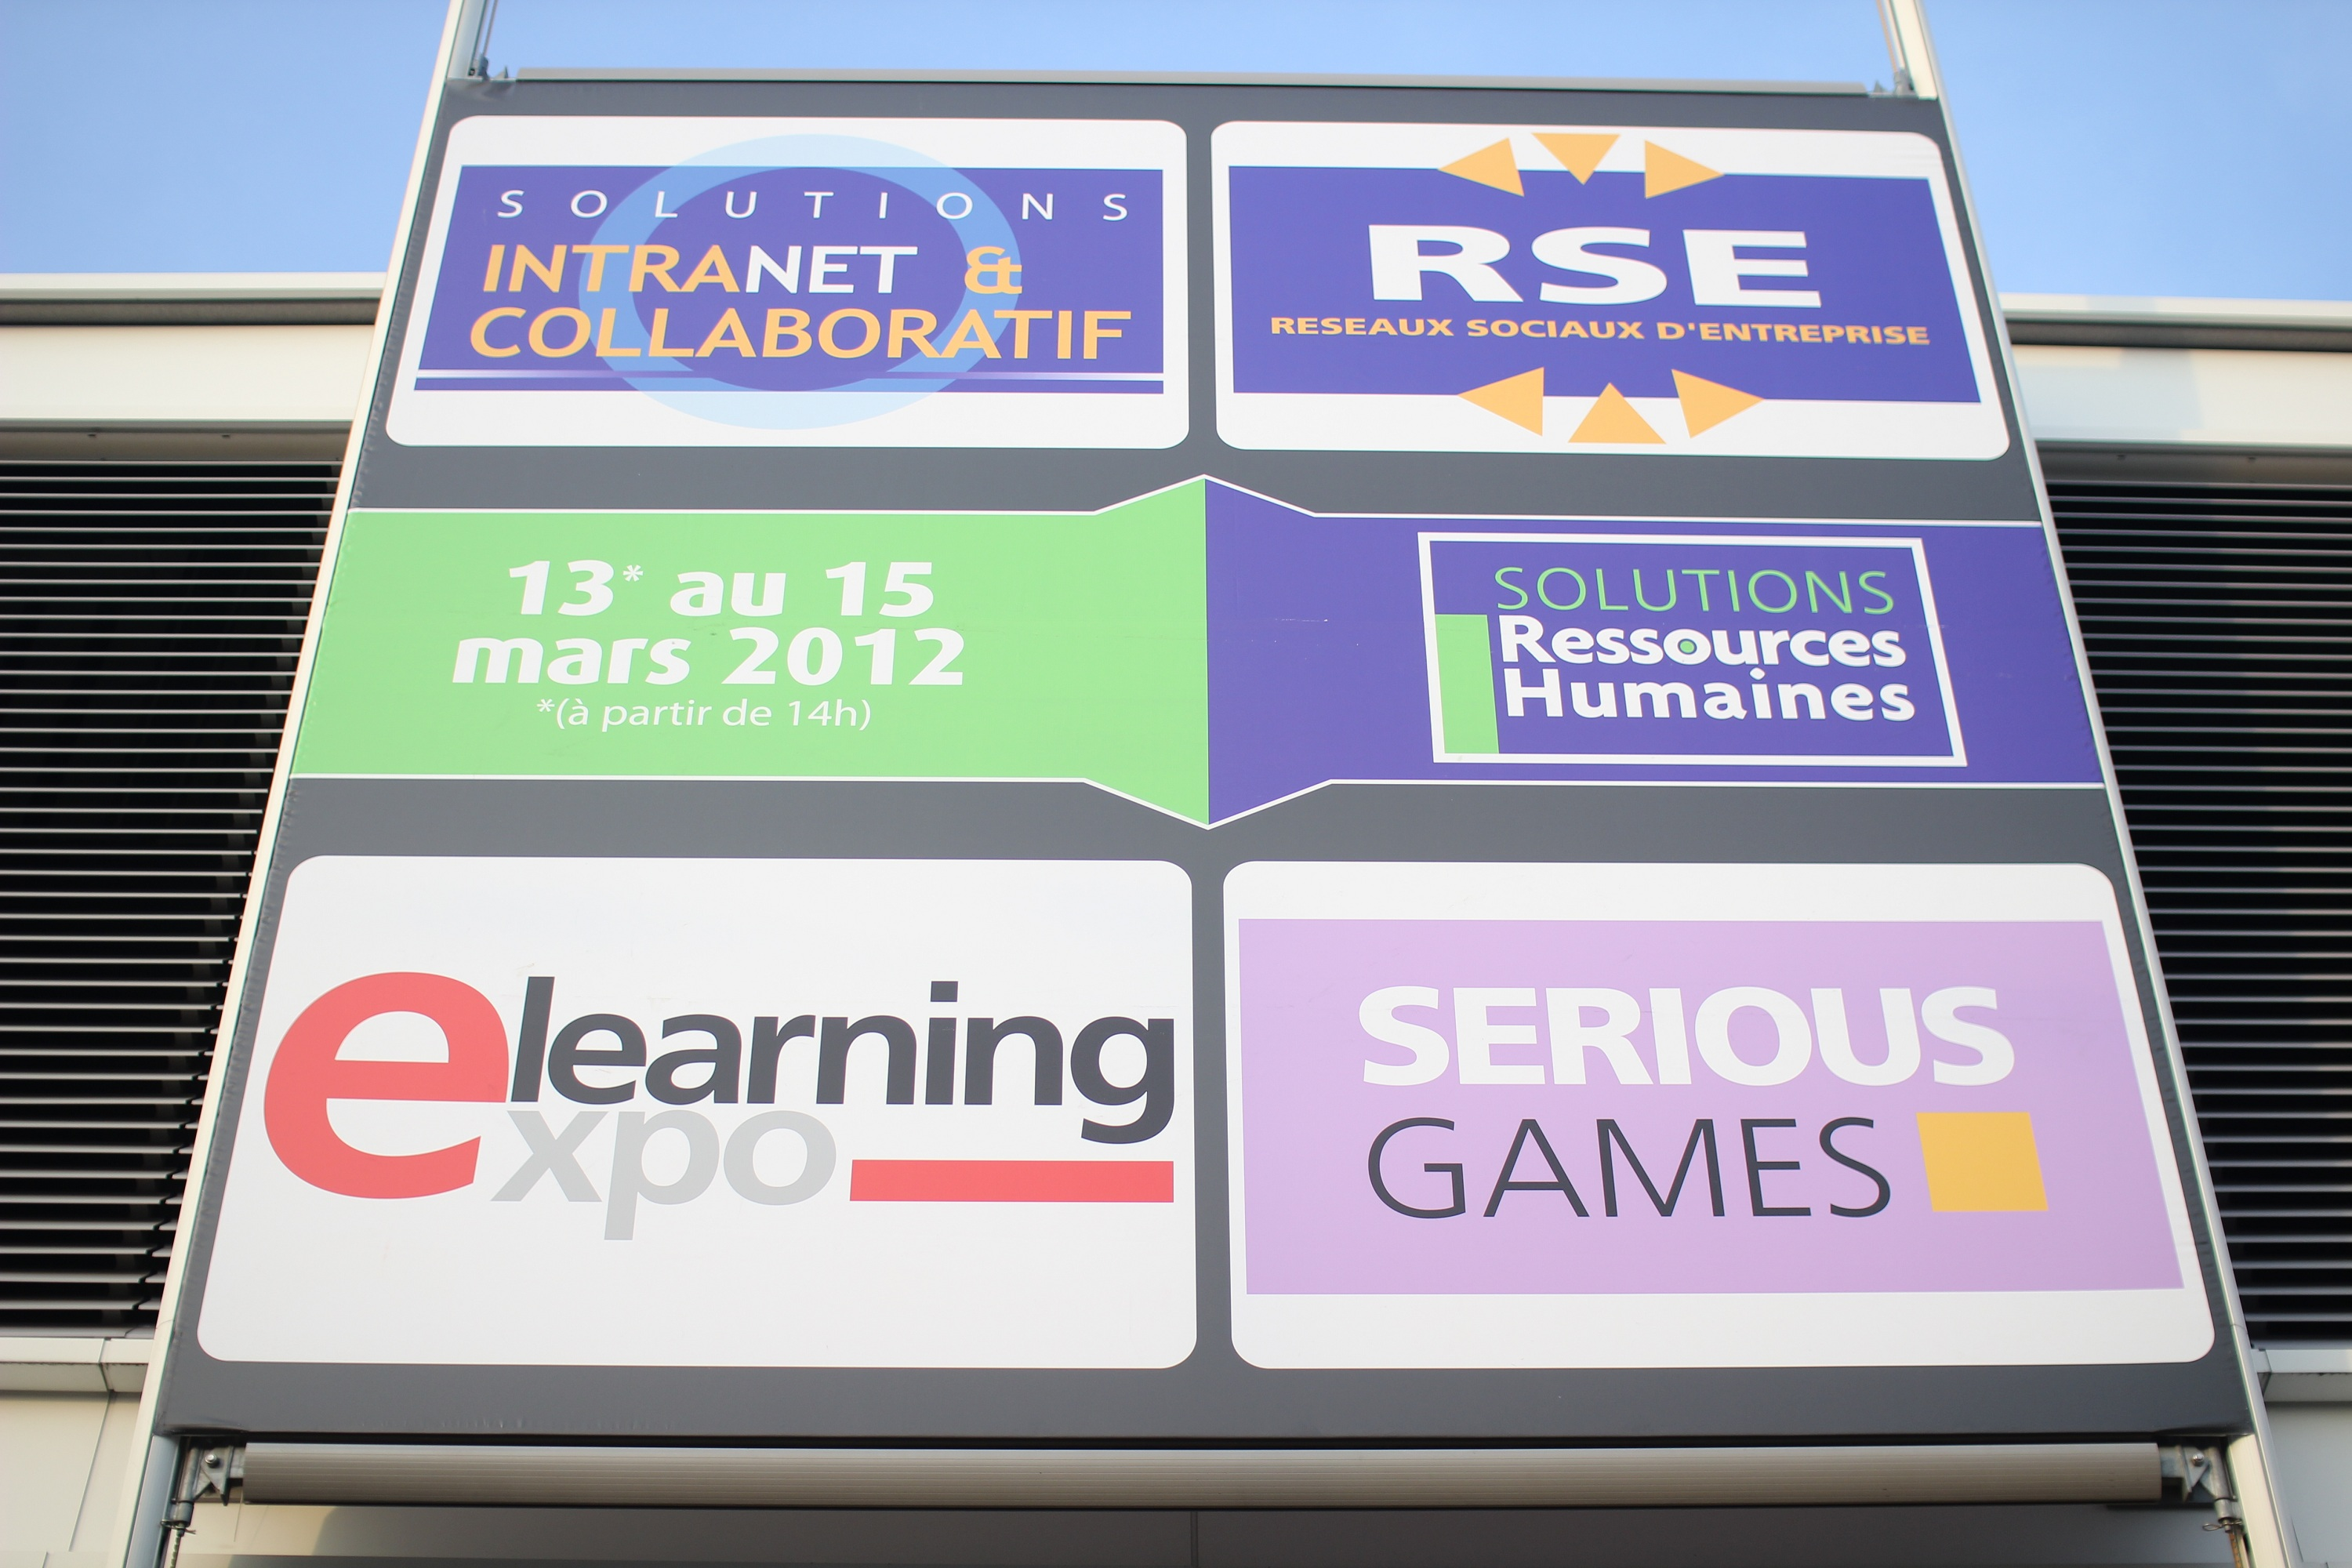 Salon Solutions RH / E-learning Expo